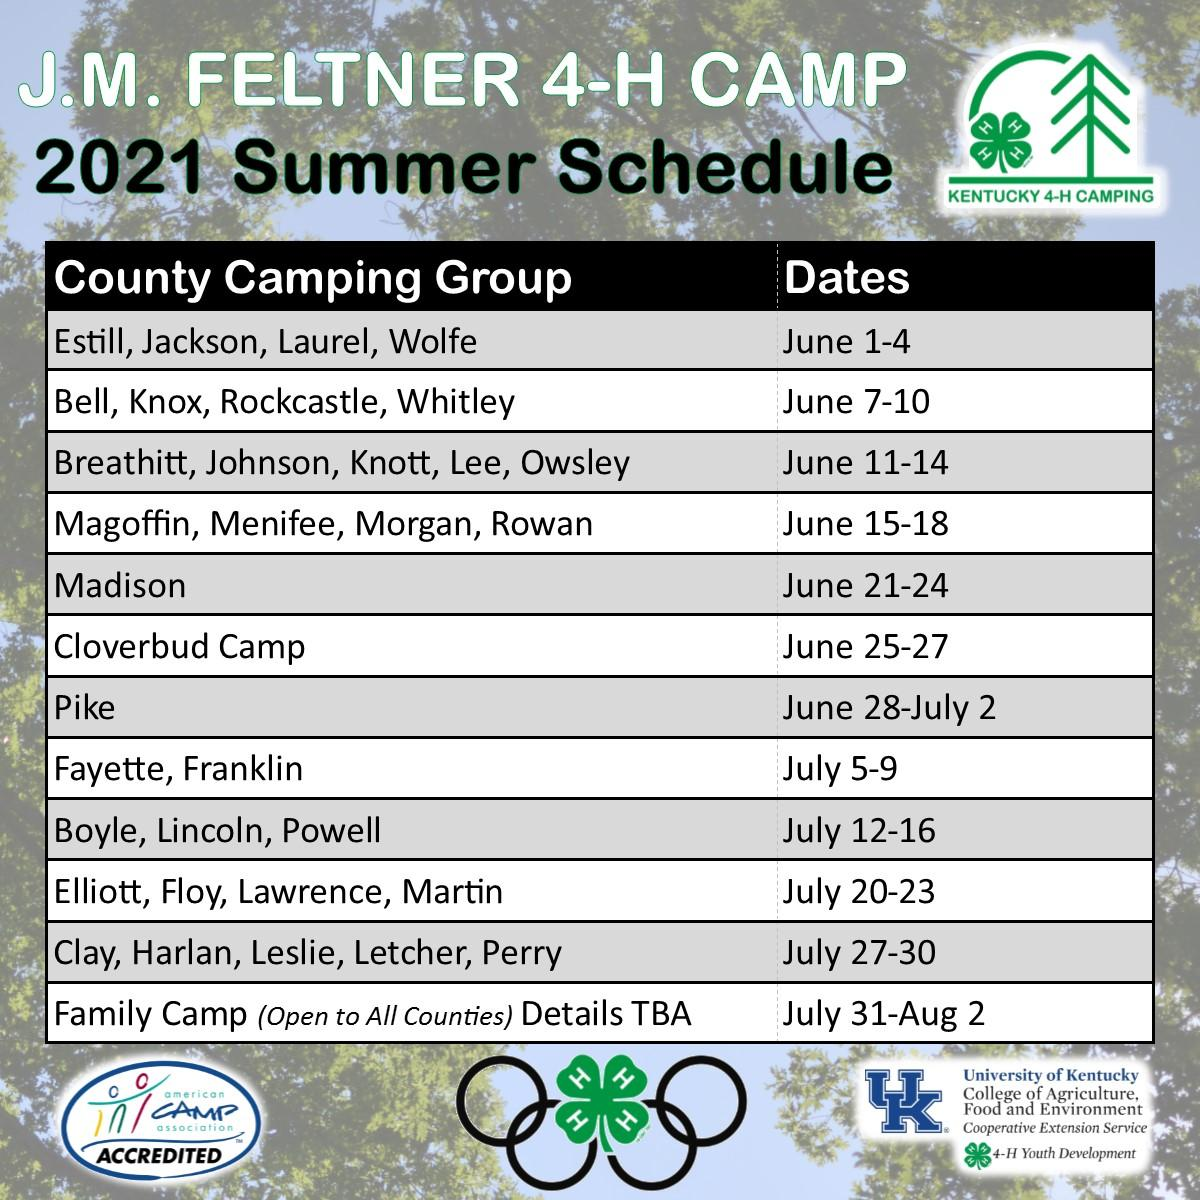 2021 Summer Camp Dates (As of 9/30/2020)